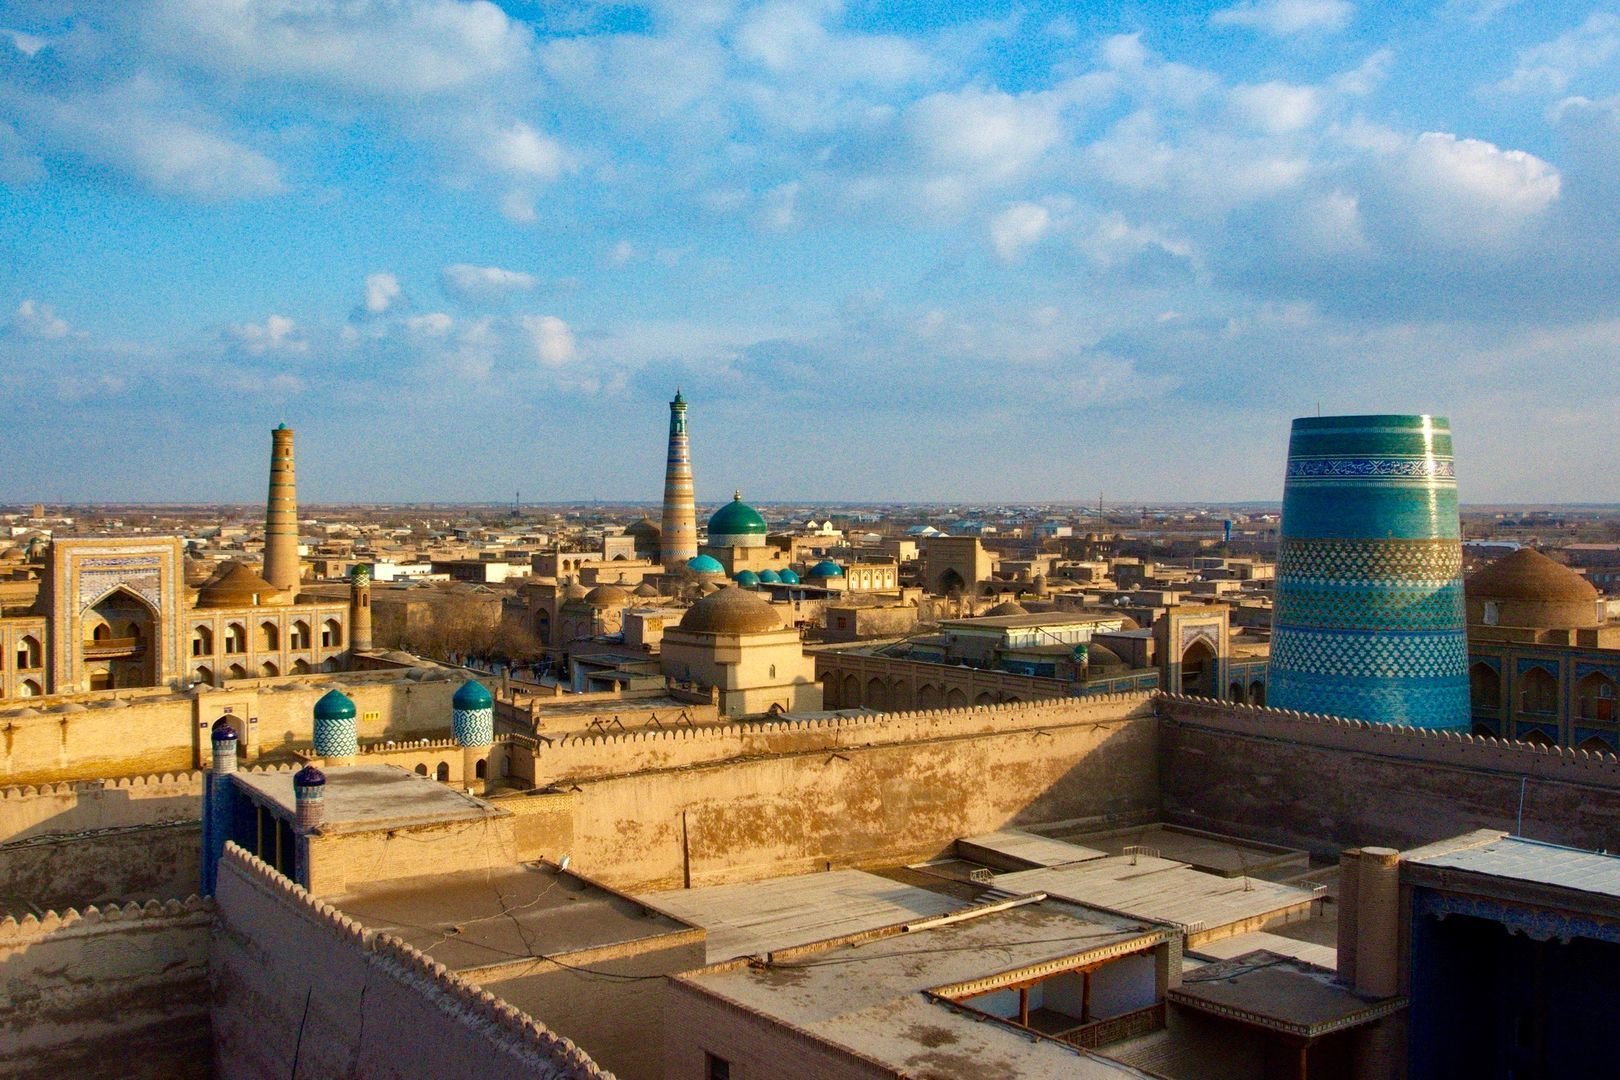 panorama of Khiva in the evening light